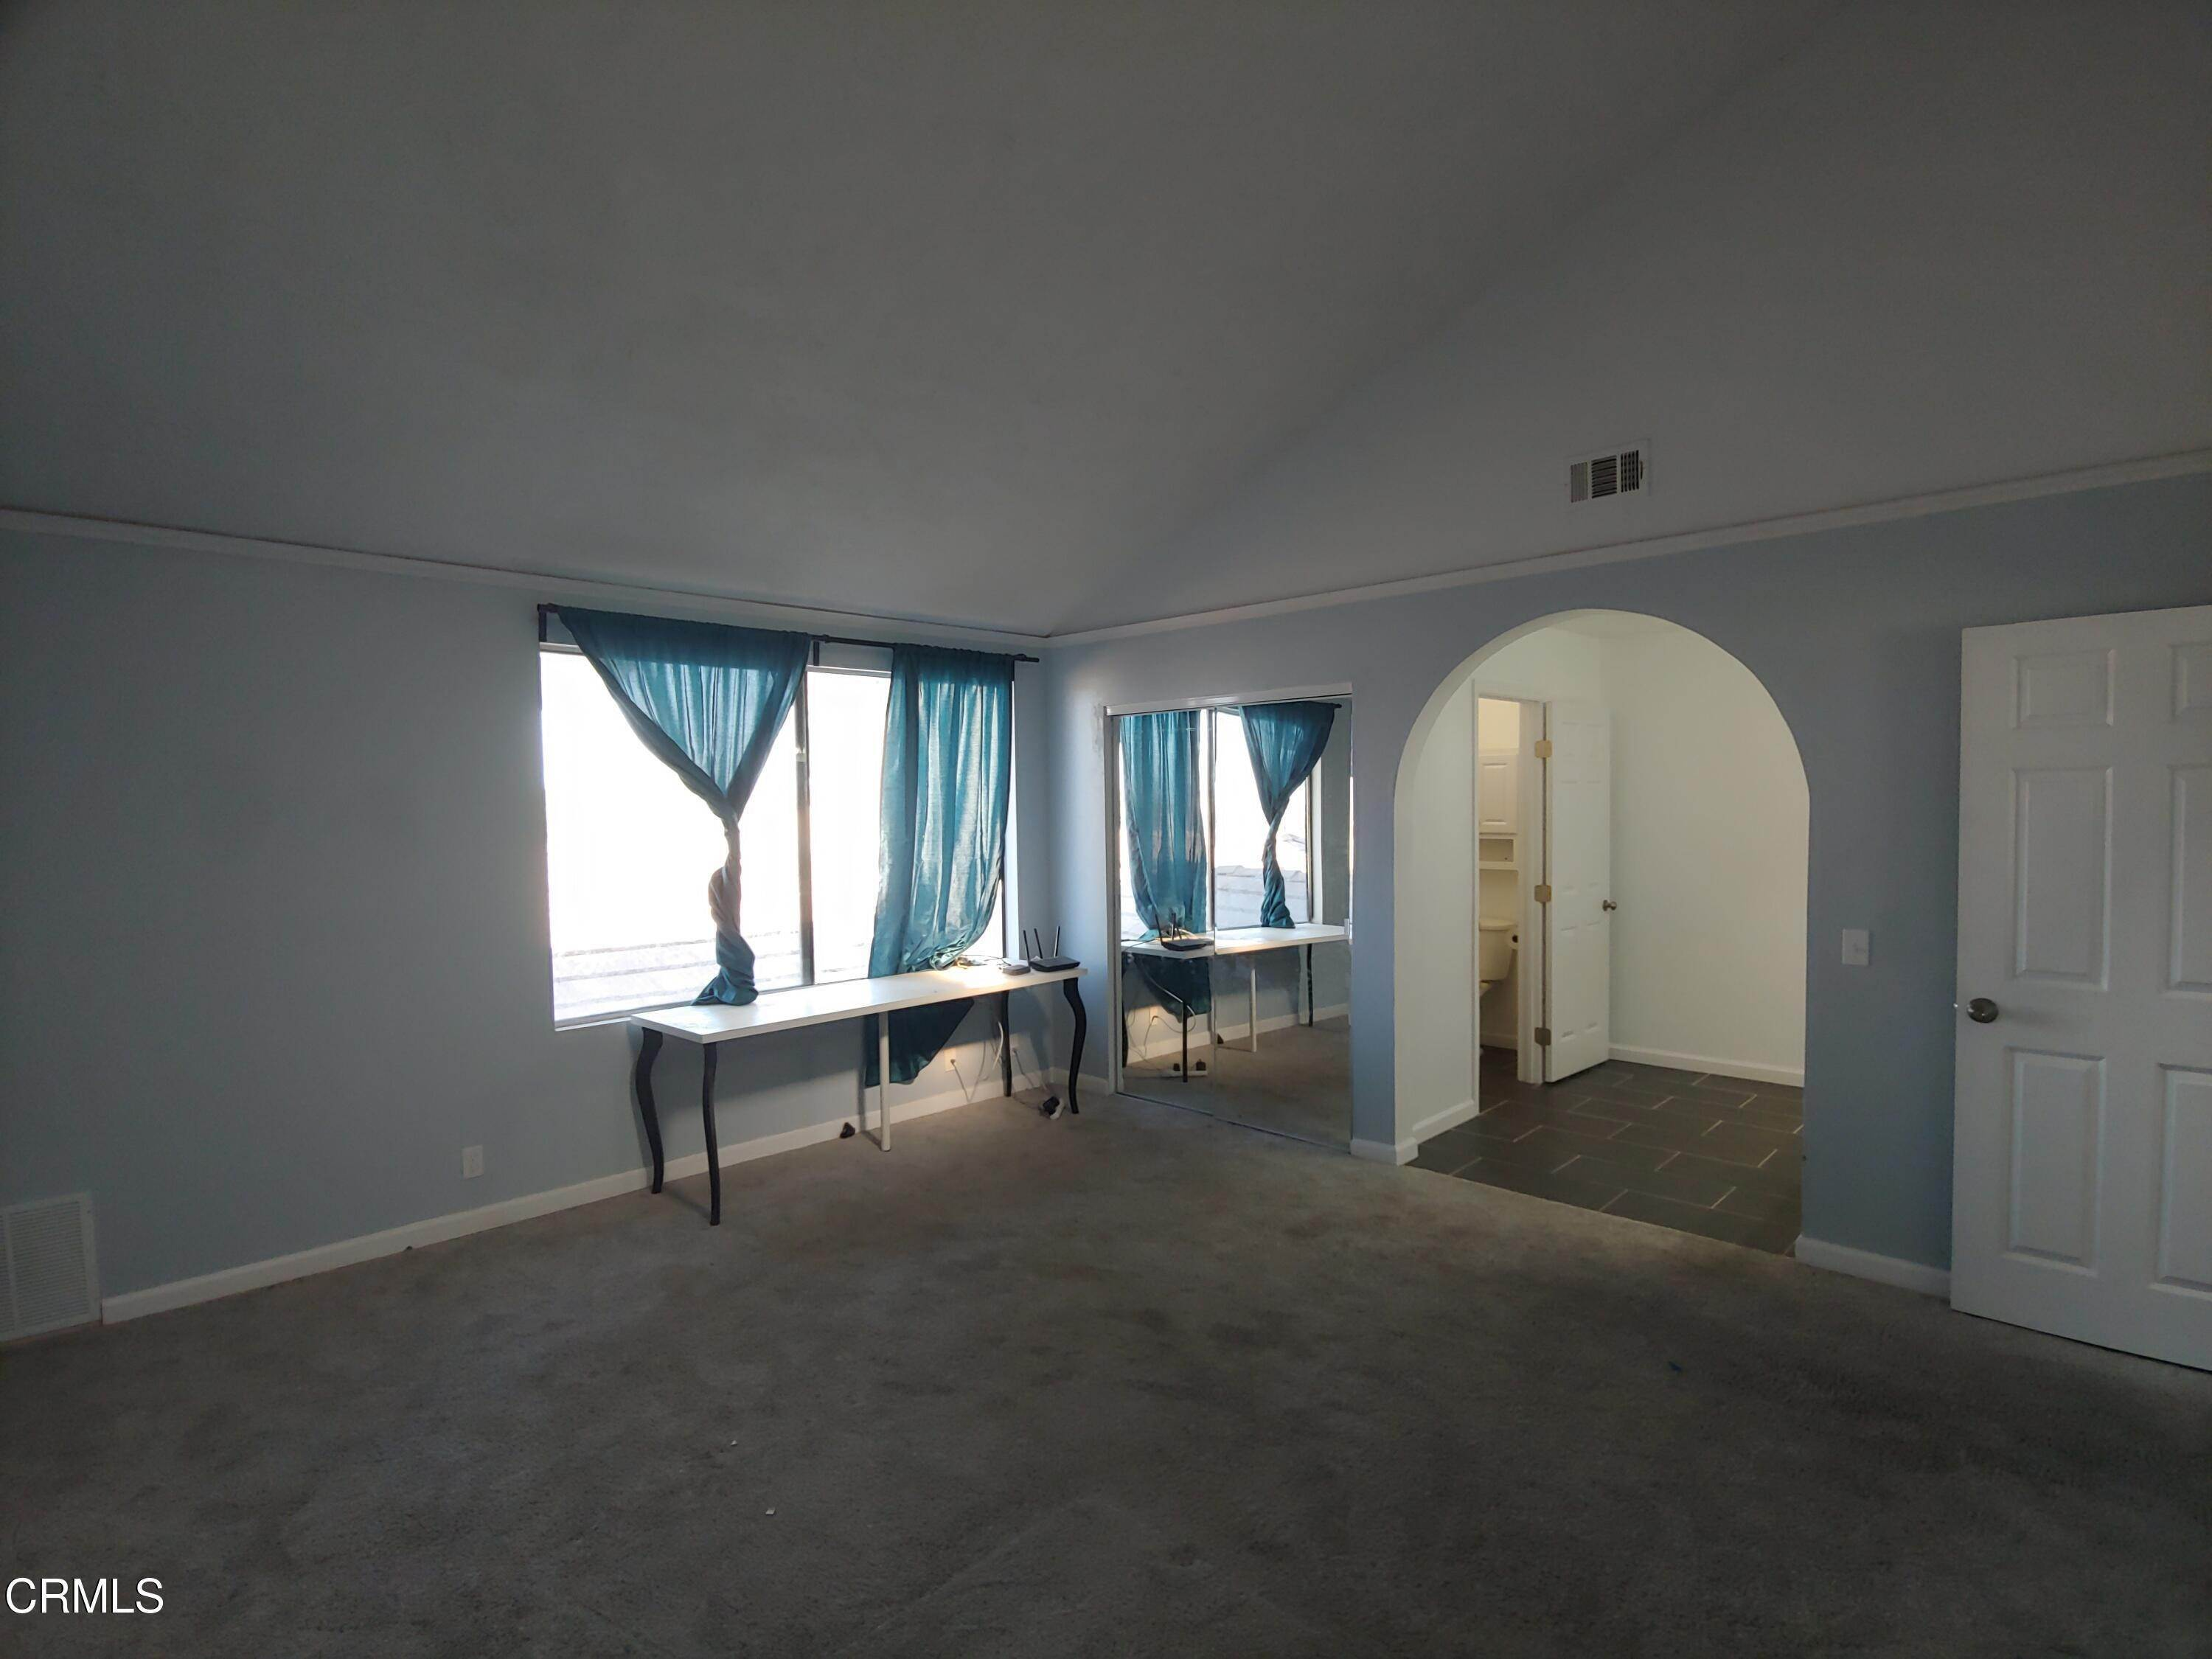 34. Condominiums for Sale at 3454 Olds Road Oxnard, California 93033 United States